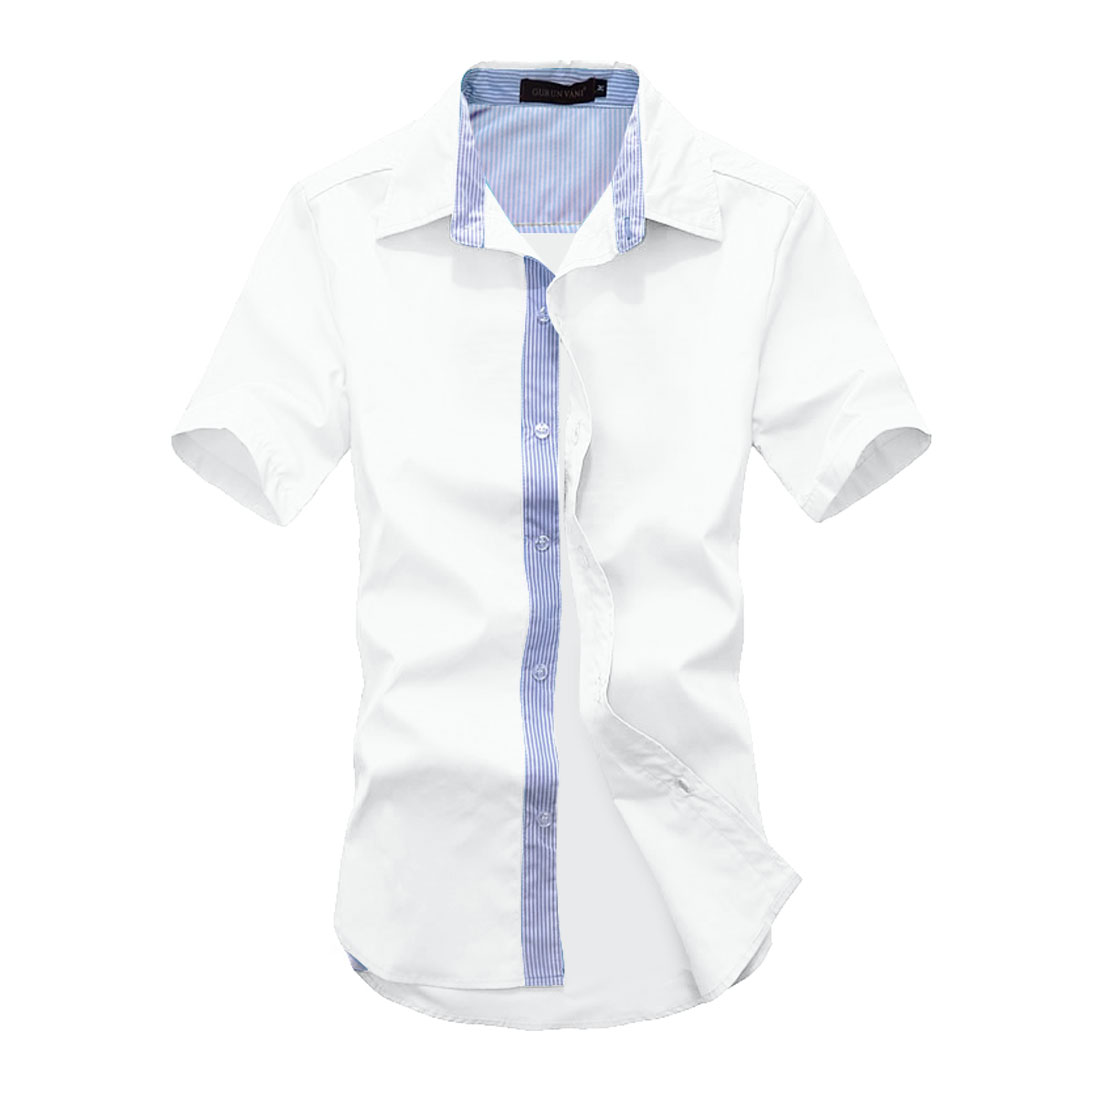 Men Striped Prints Short-sleeved Buttons Front Shirts White M